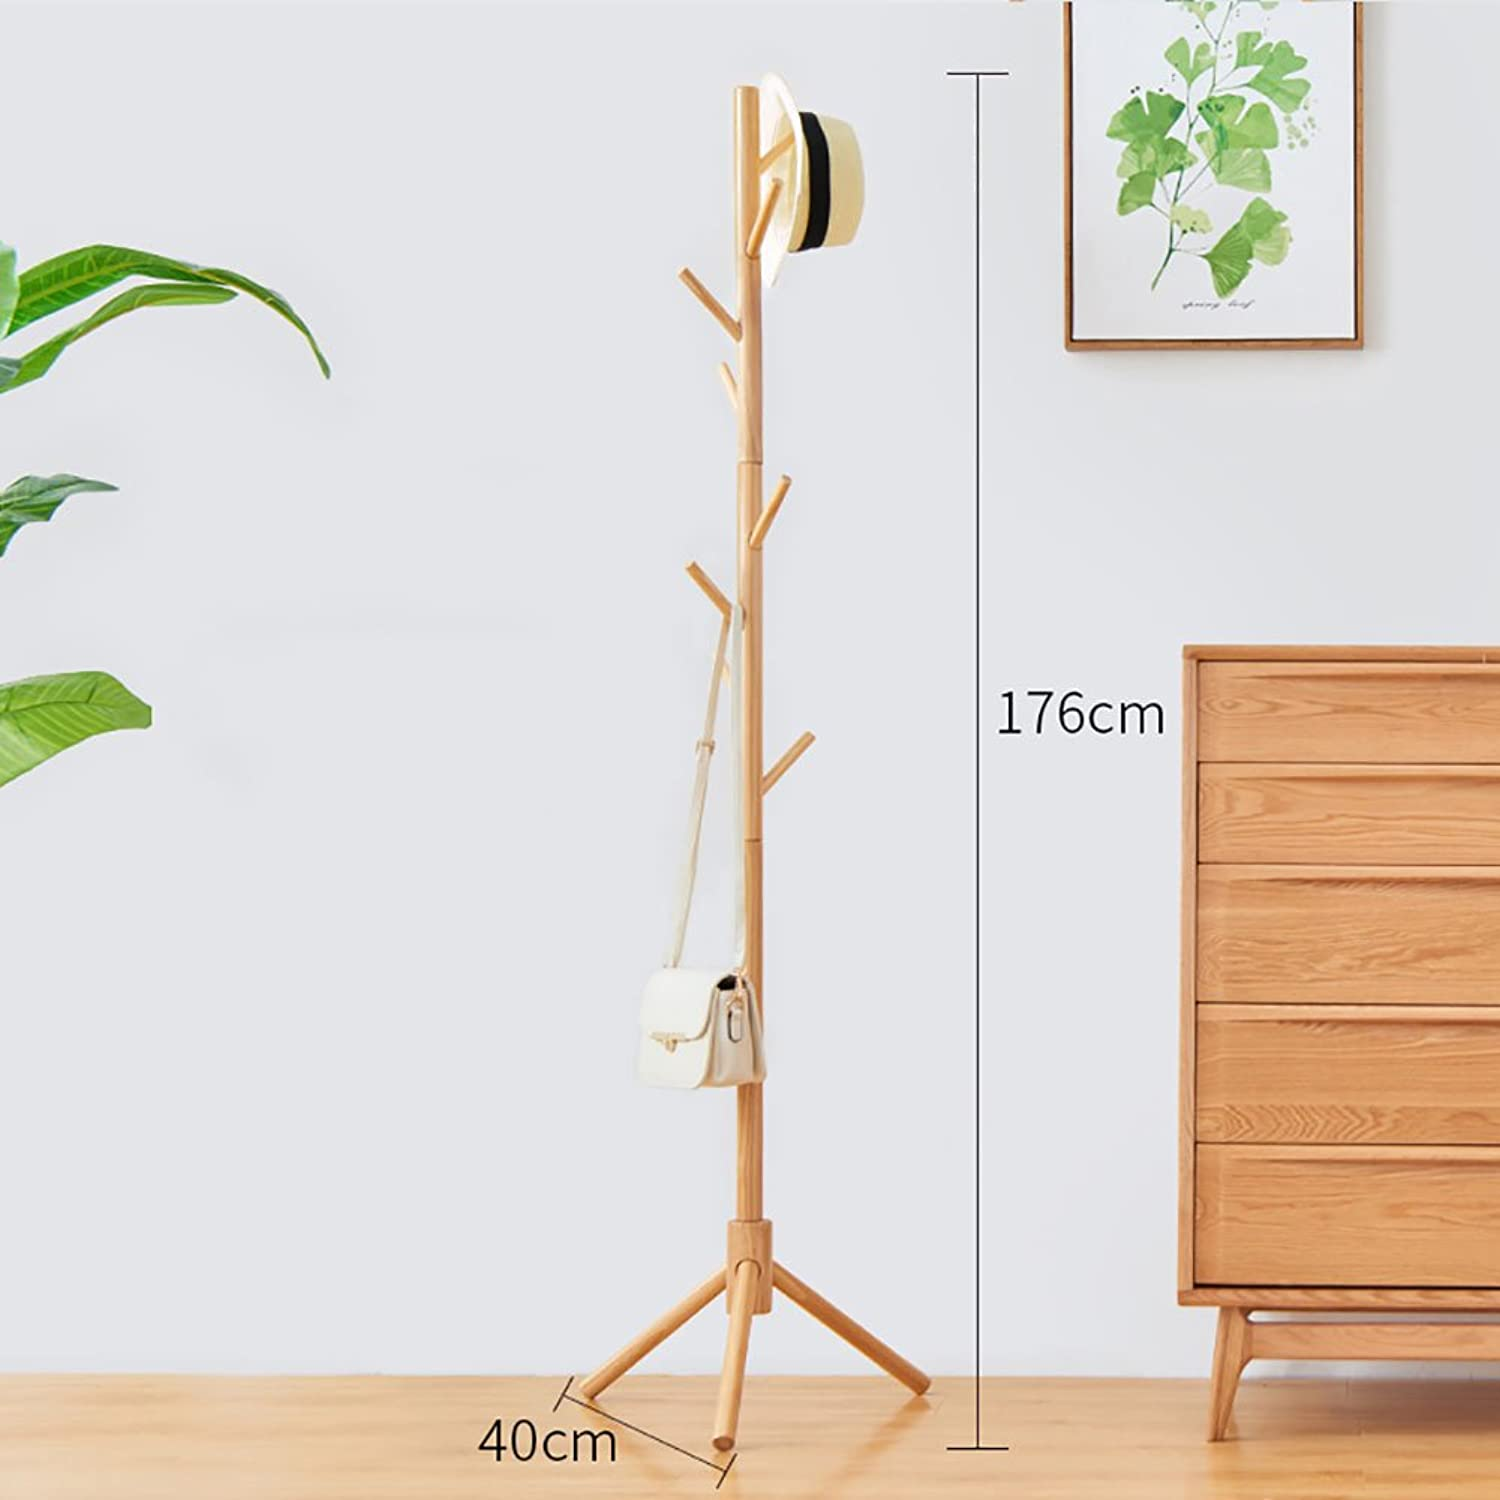 LFF- Bedroom Simple Clothes Shelf Home Simple Modern greenical Living Room Solid Wood Natural color Honey color Brown White Multi-colord (color   Natural color)